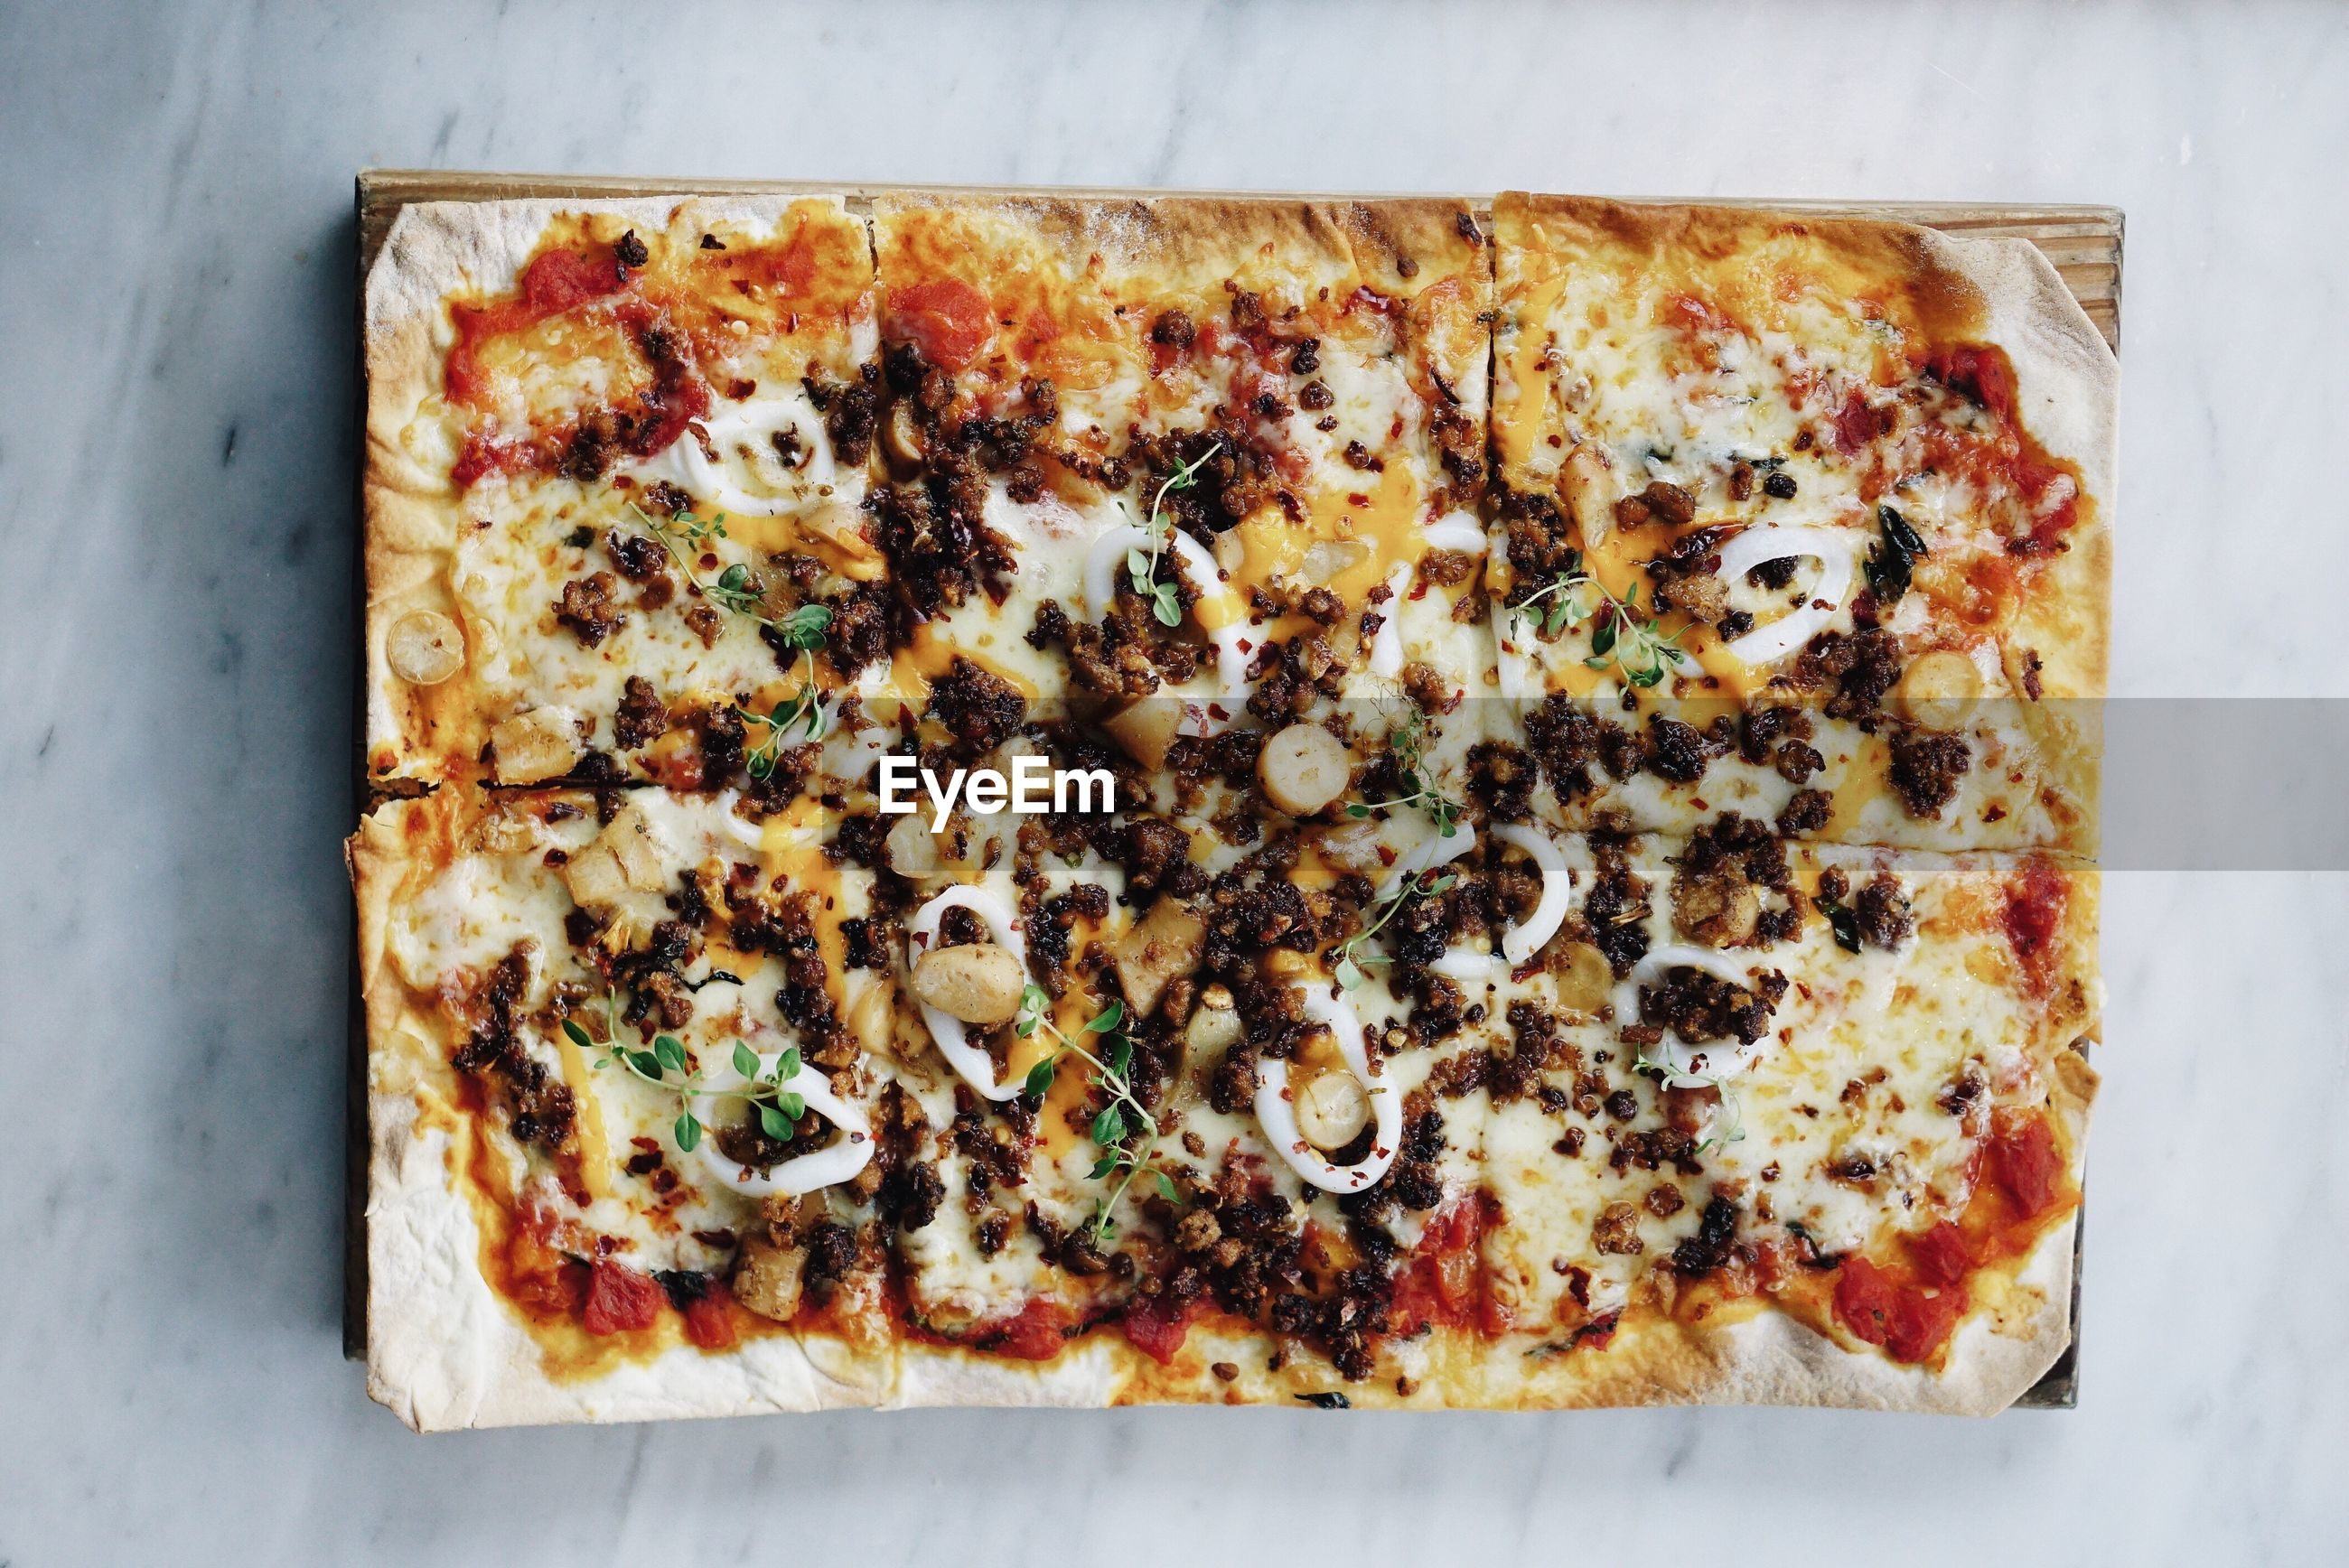 Directly above shot of pizza on table